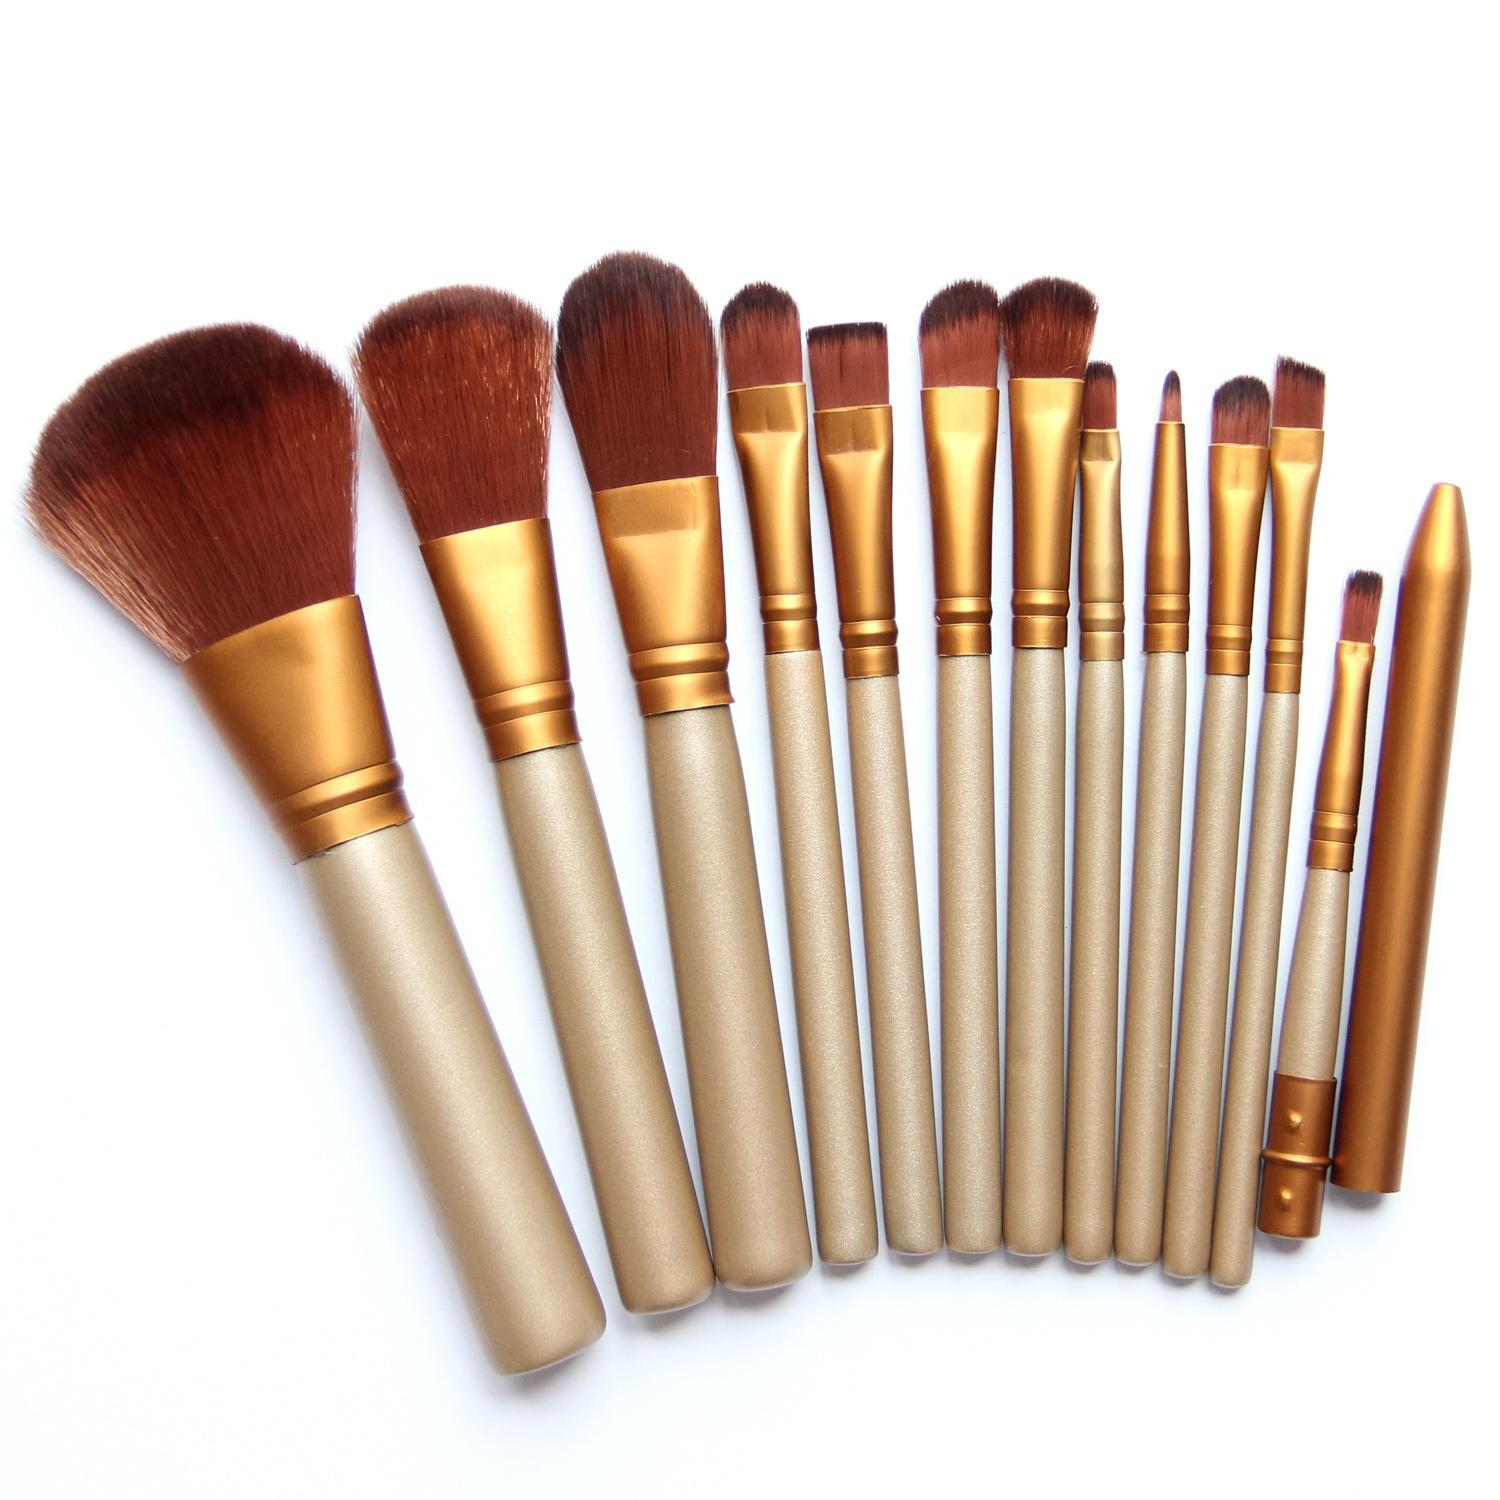 Wooden Handle Makeup Brush Set Iron Case Cosmetic Makeup Set 7Pcs Soft Hair Makeup Brush